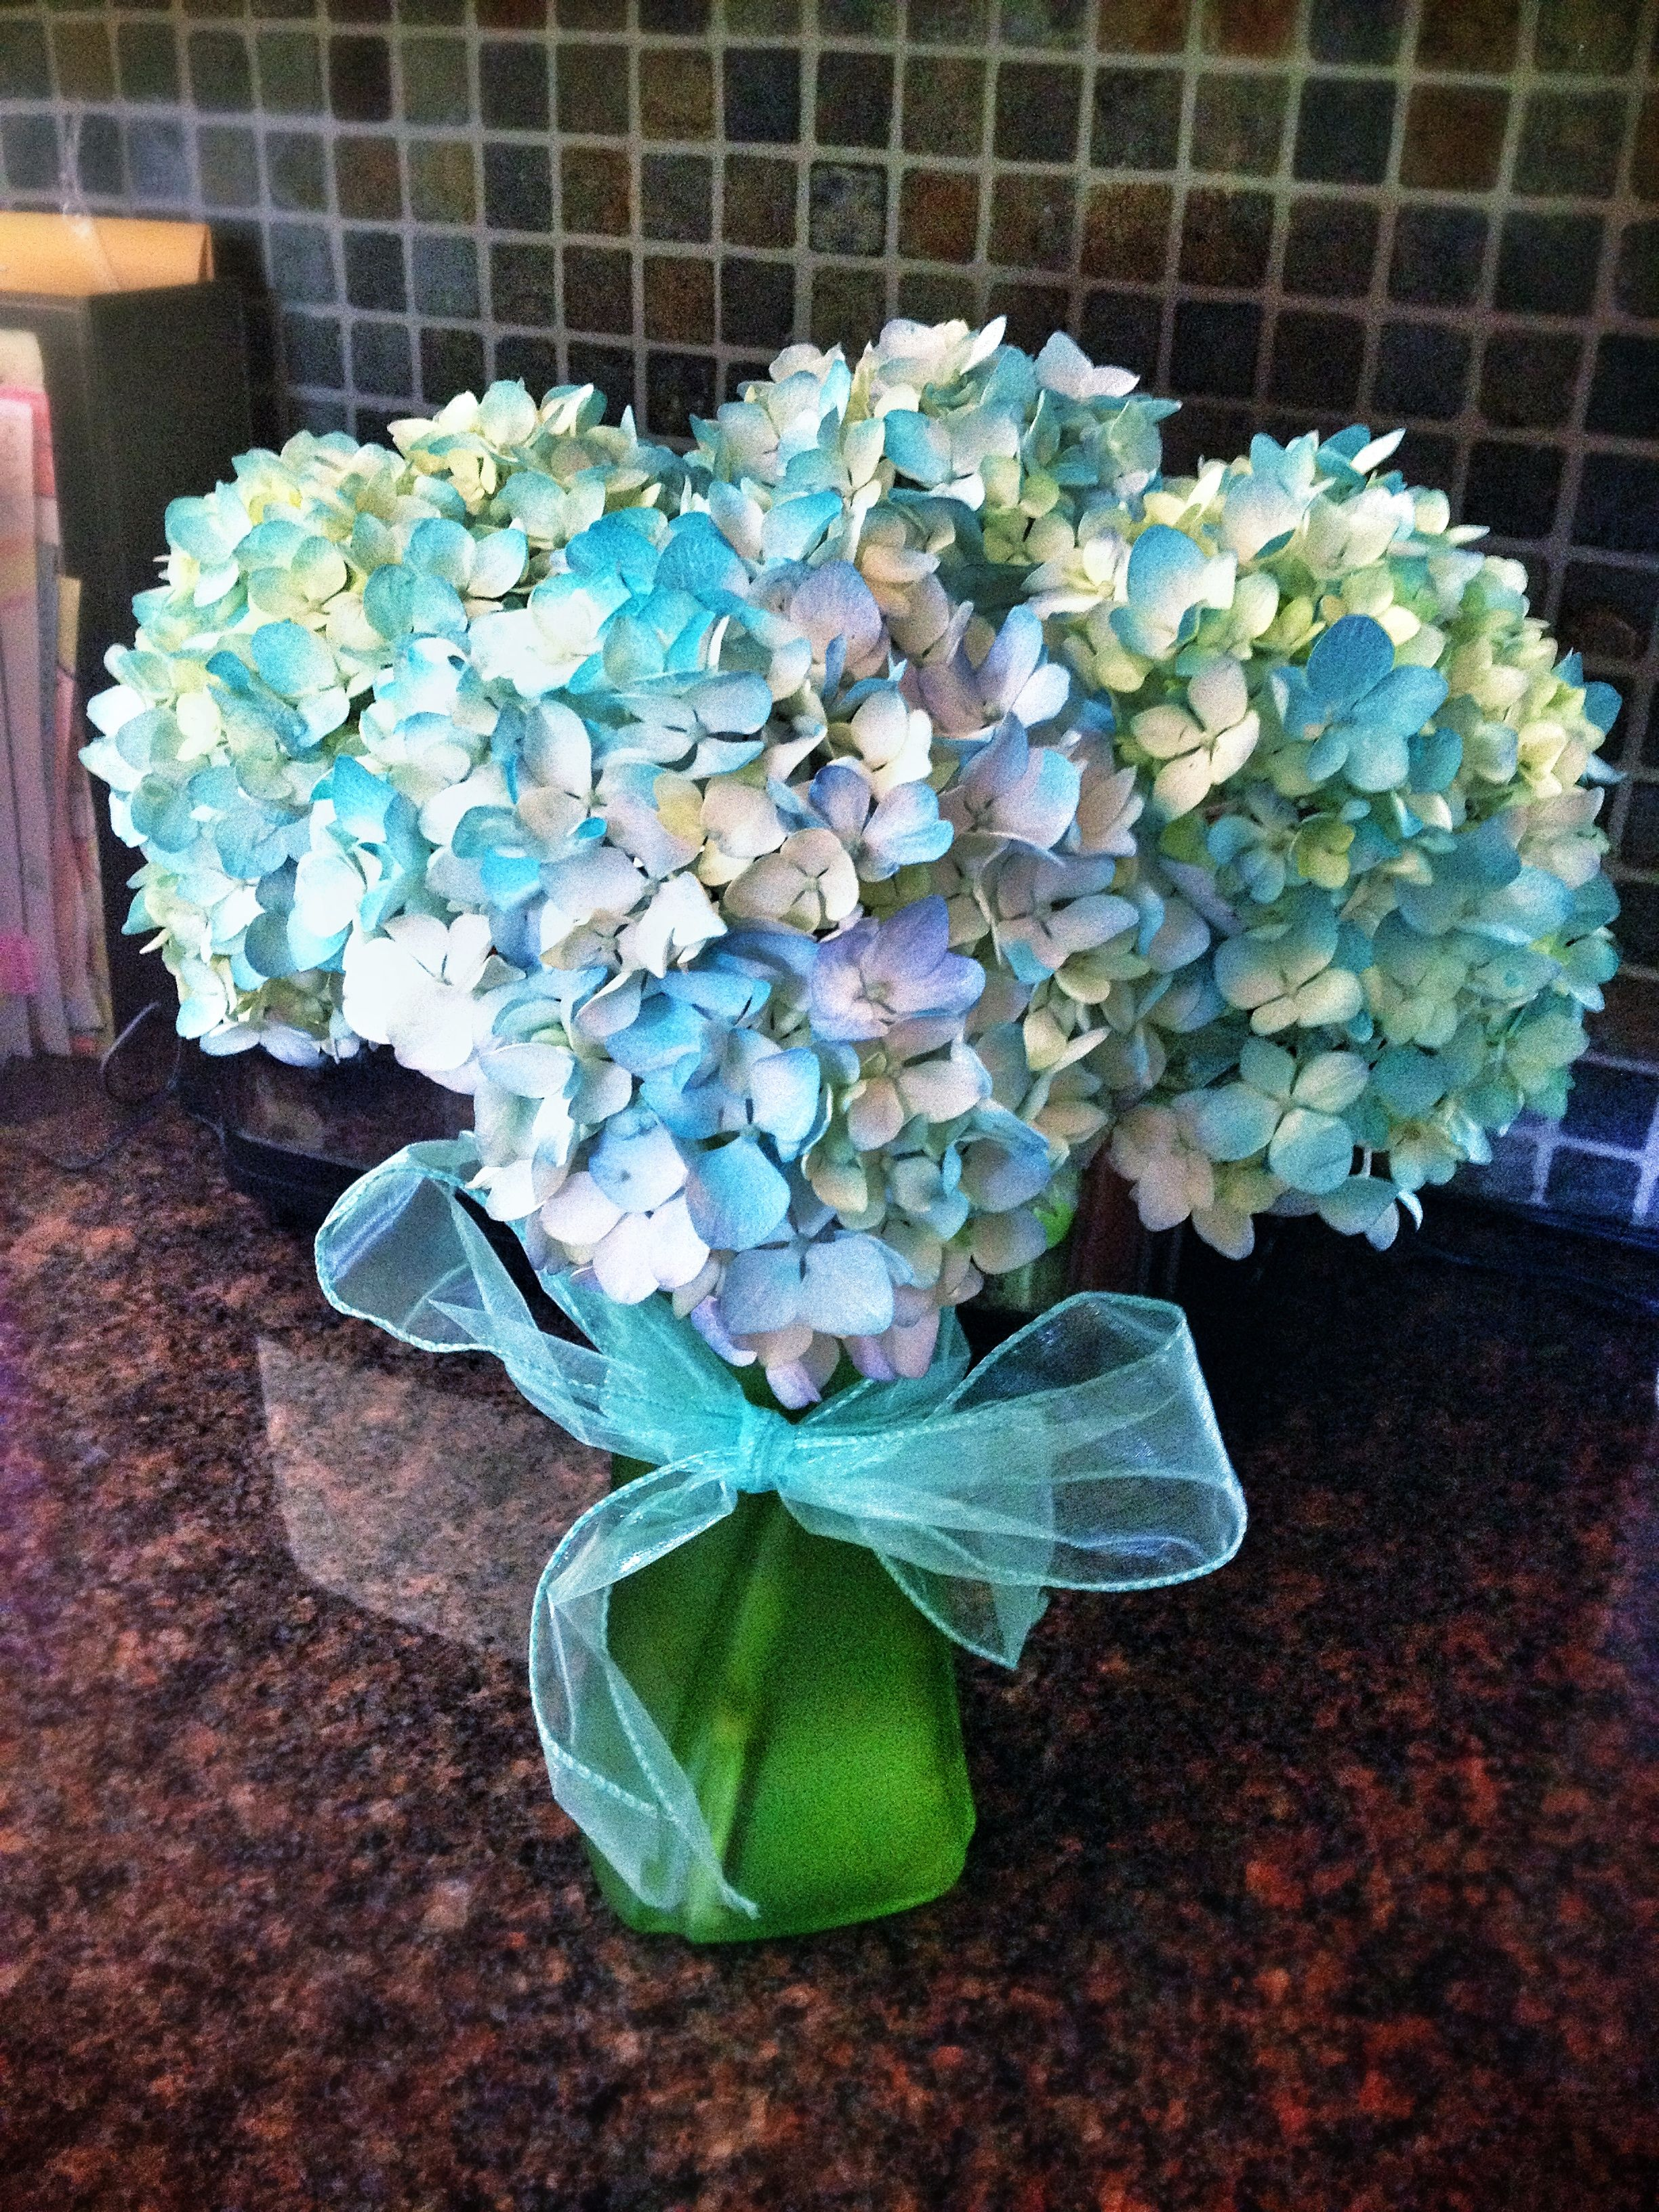 Light blue & white hydrangeas spray painted a Tiffany blue ...